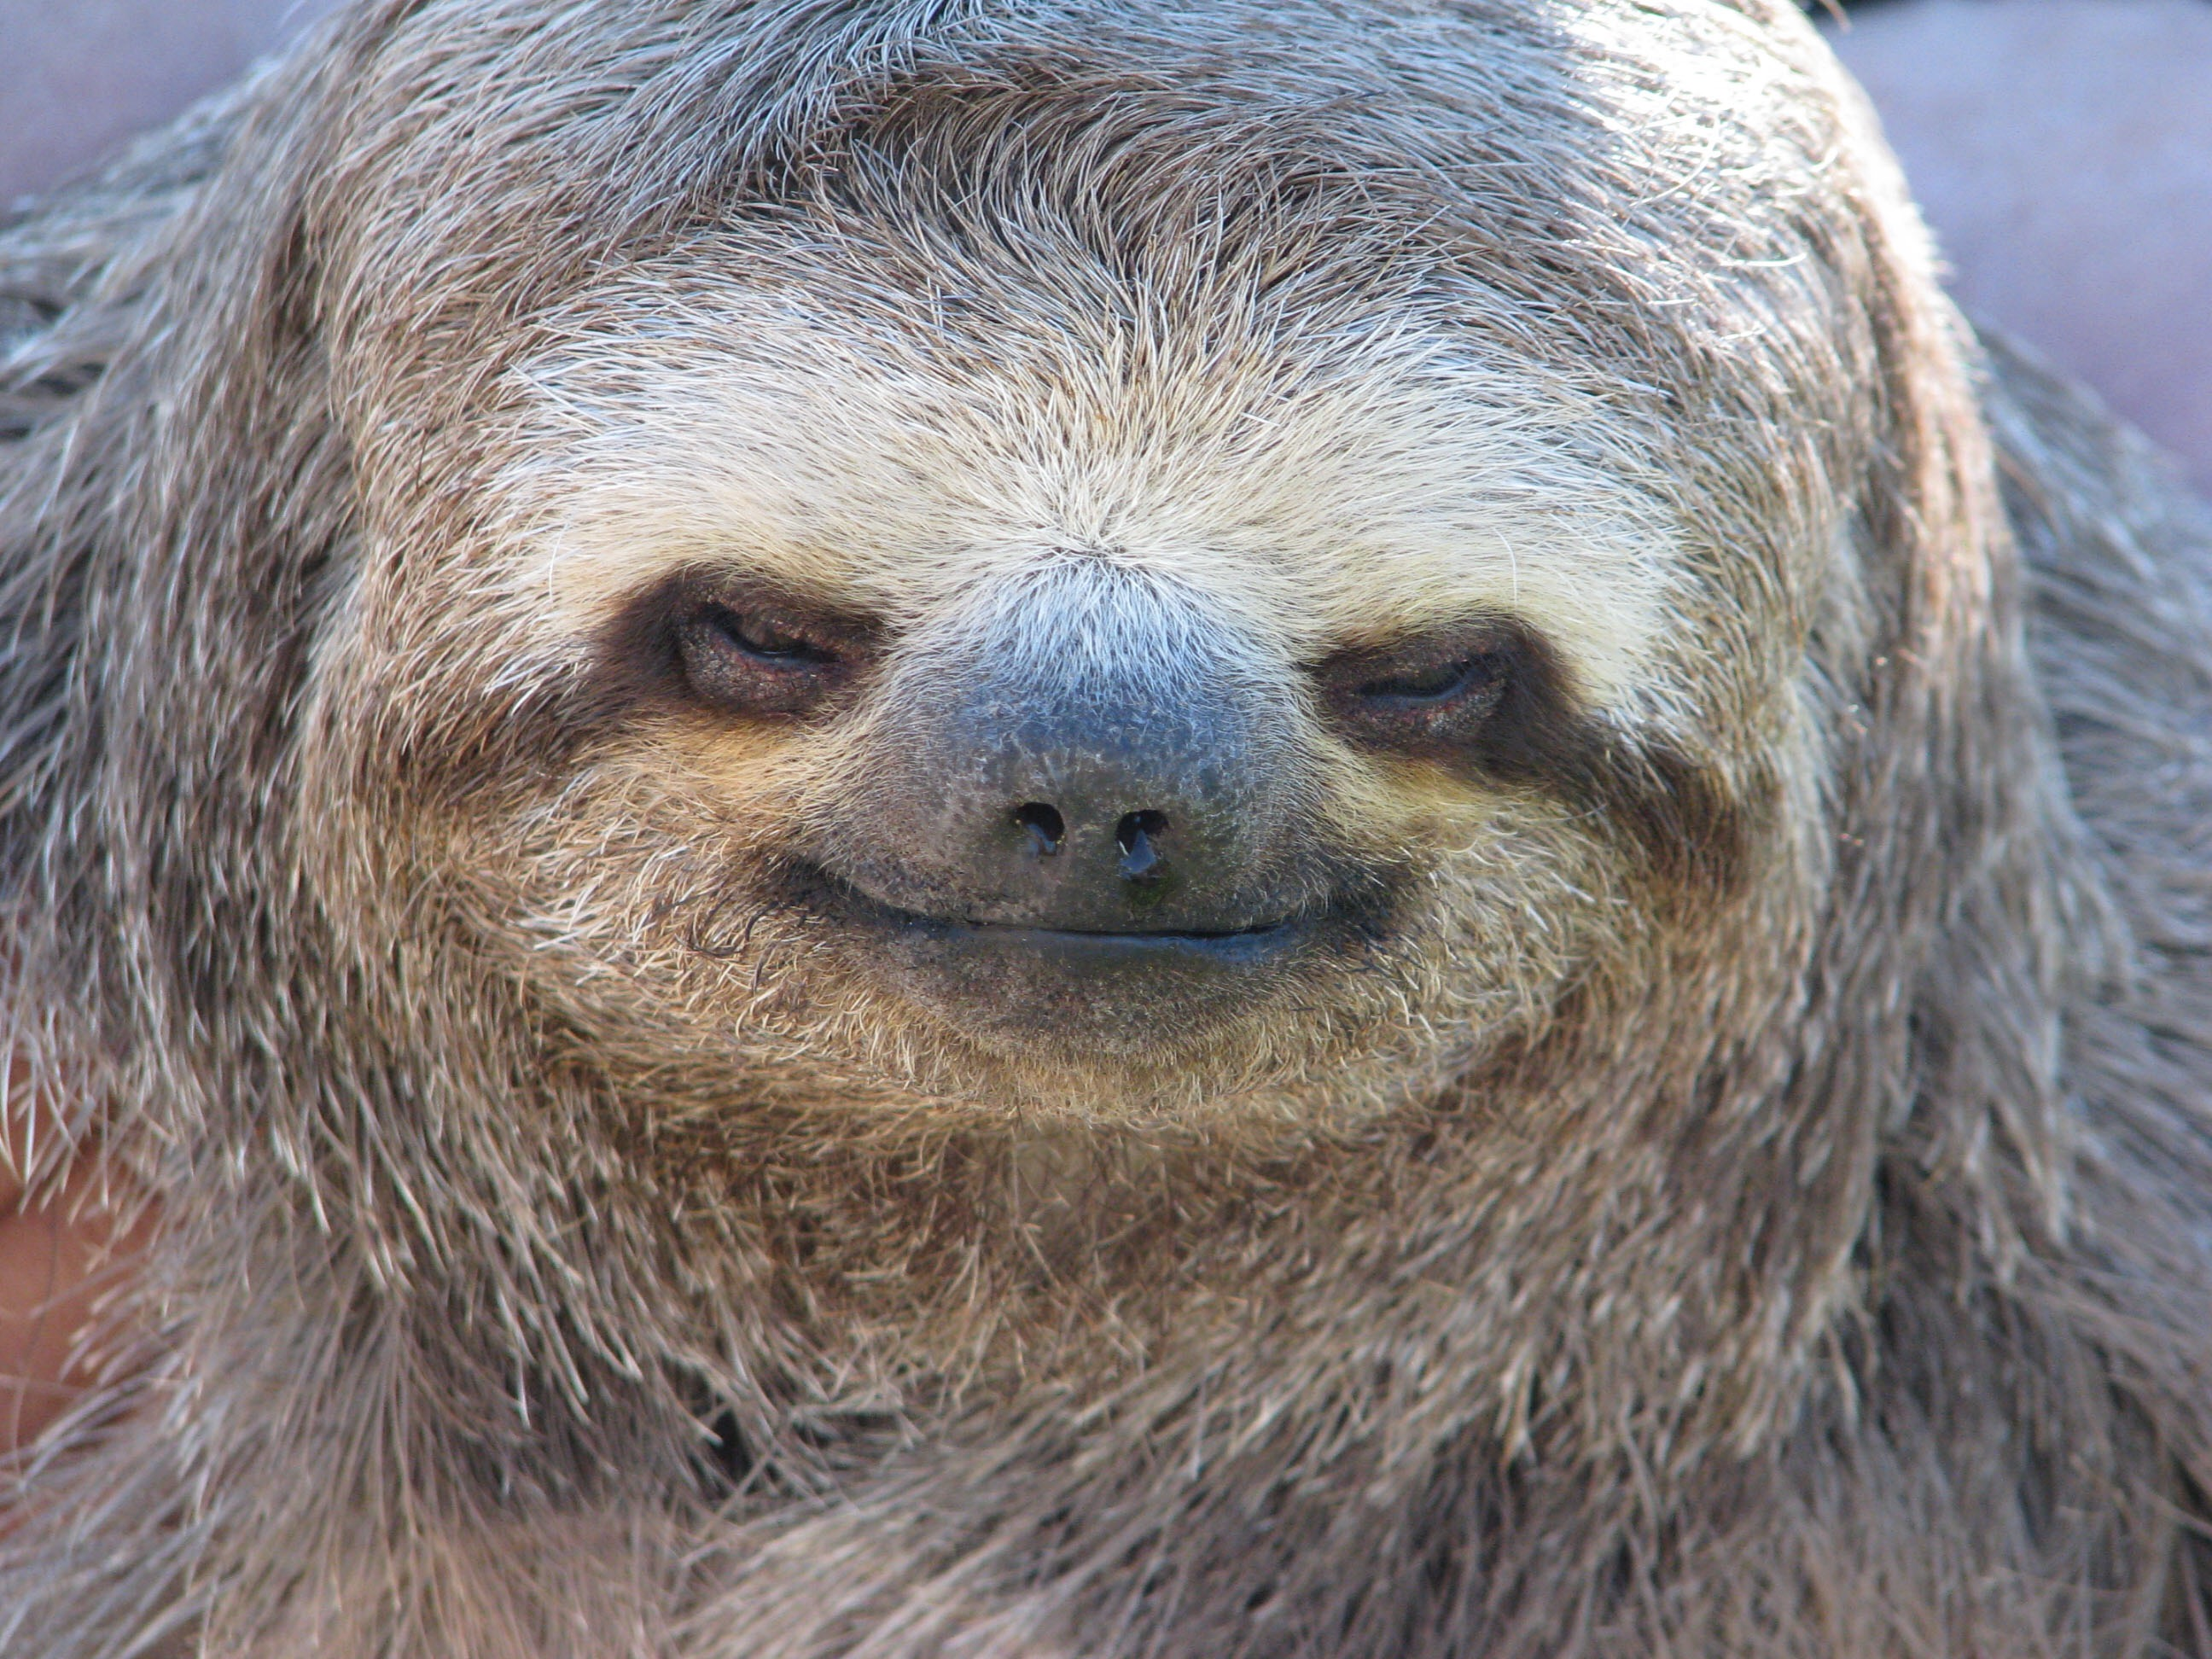 Sloths are so creepy. Slow and creepy. At least my computer is just slow. (pic of creepy sloth)